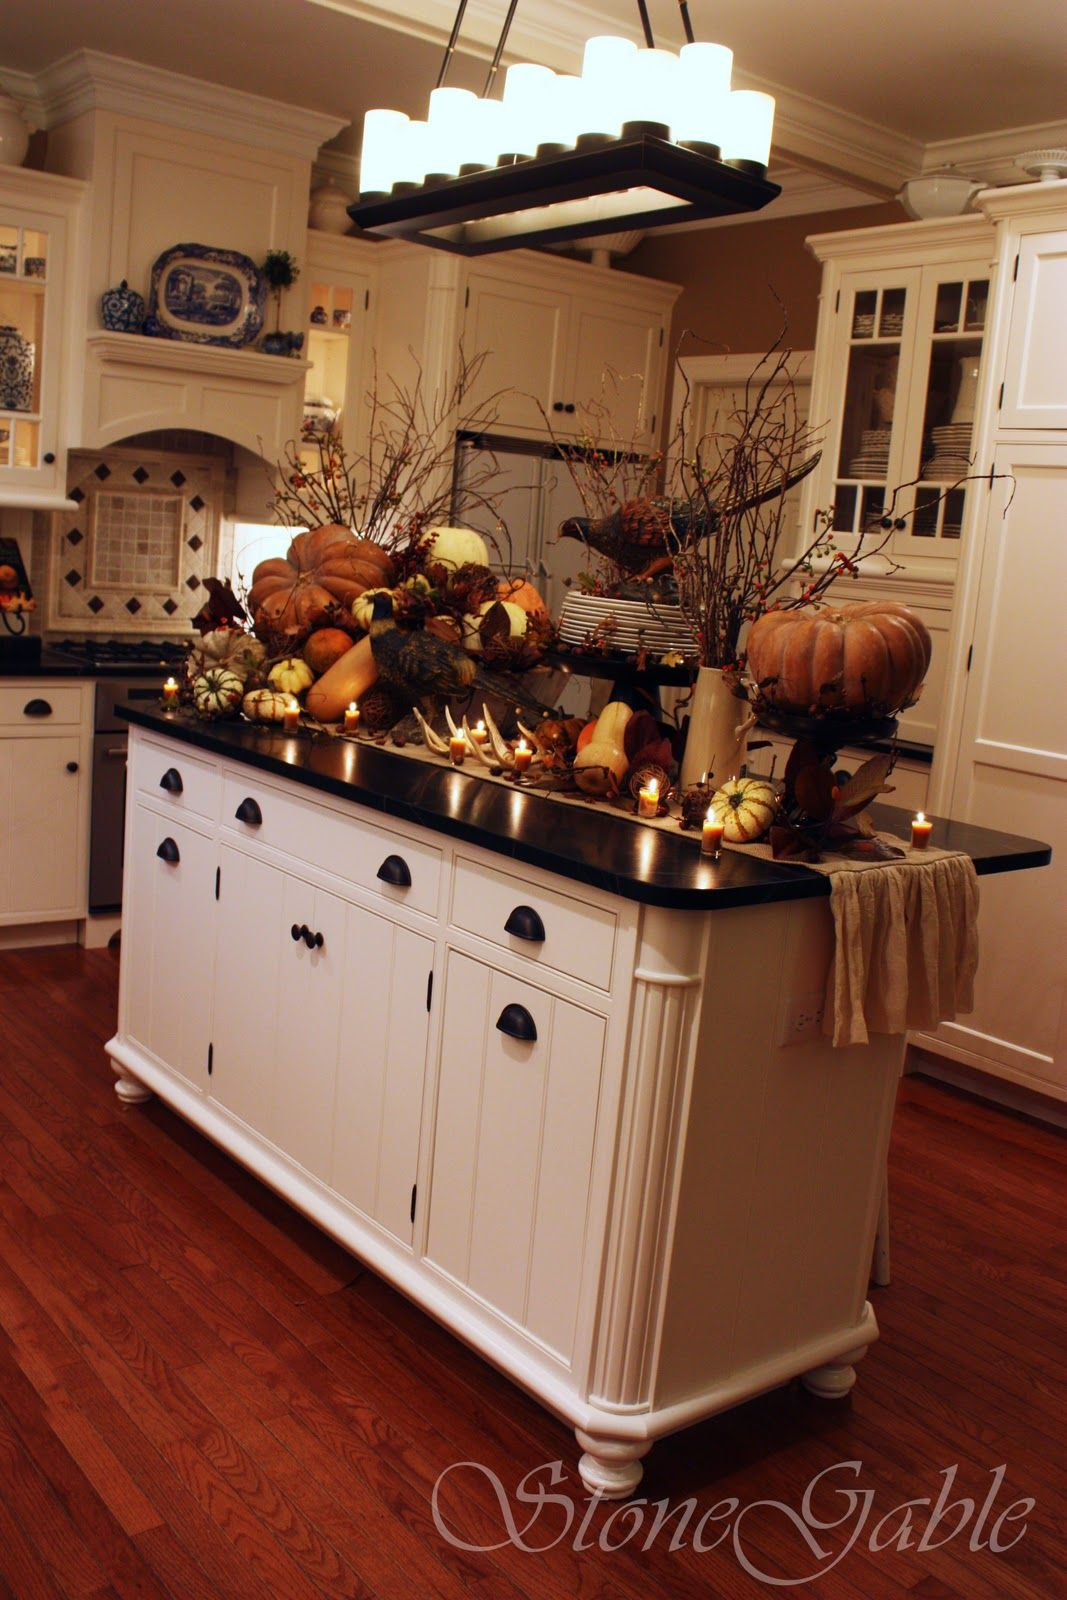 Kitchen Island Centerpiece How Much Does A Sink Cost Decorating For Thanksgiving Buffet Style Where